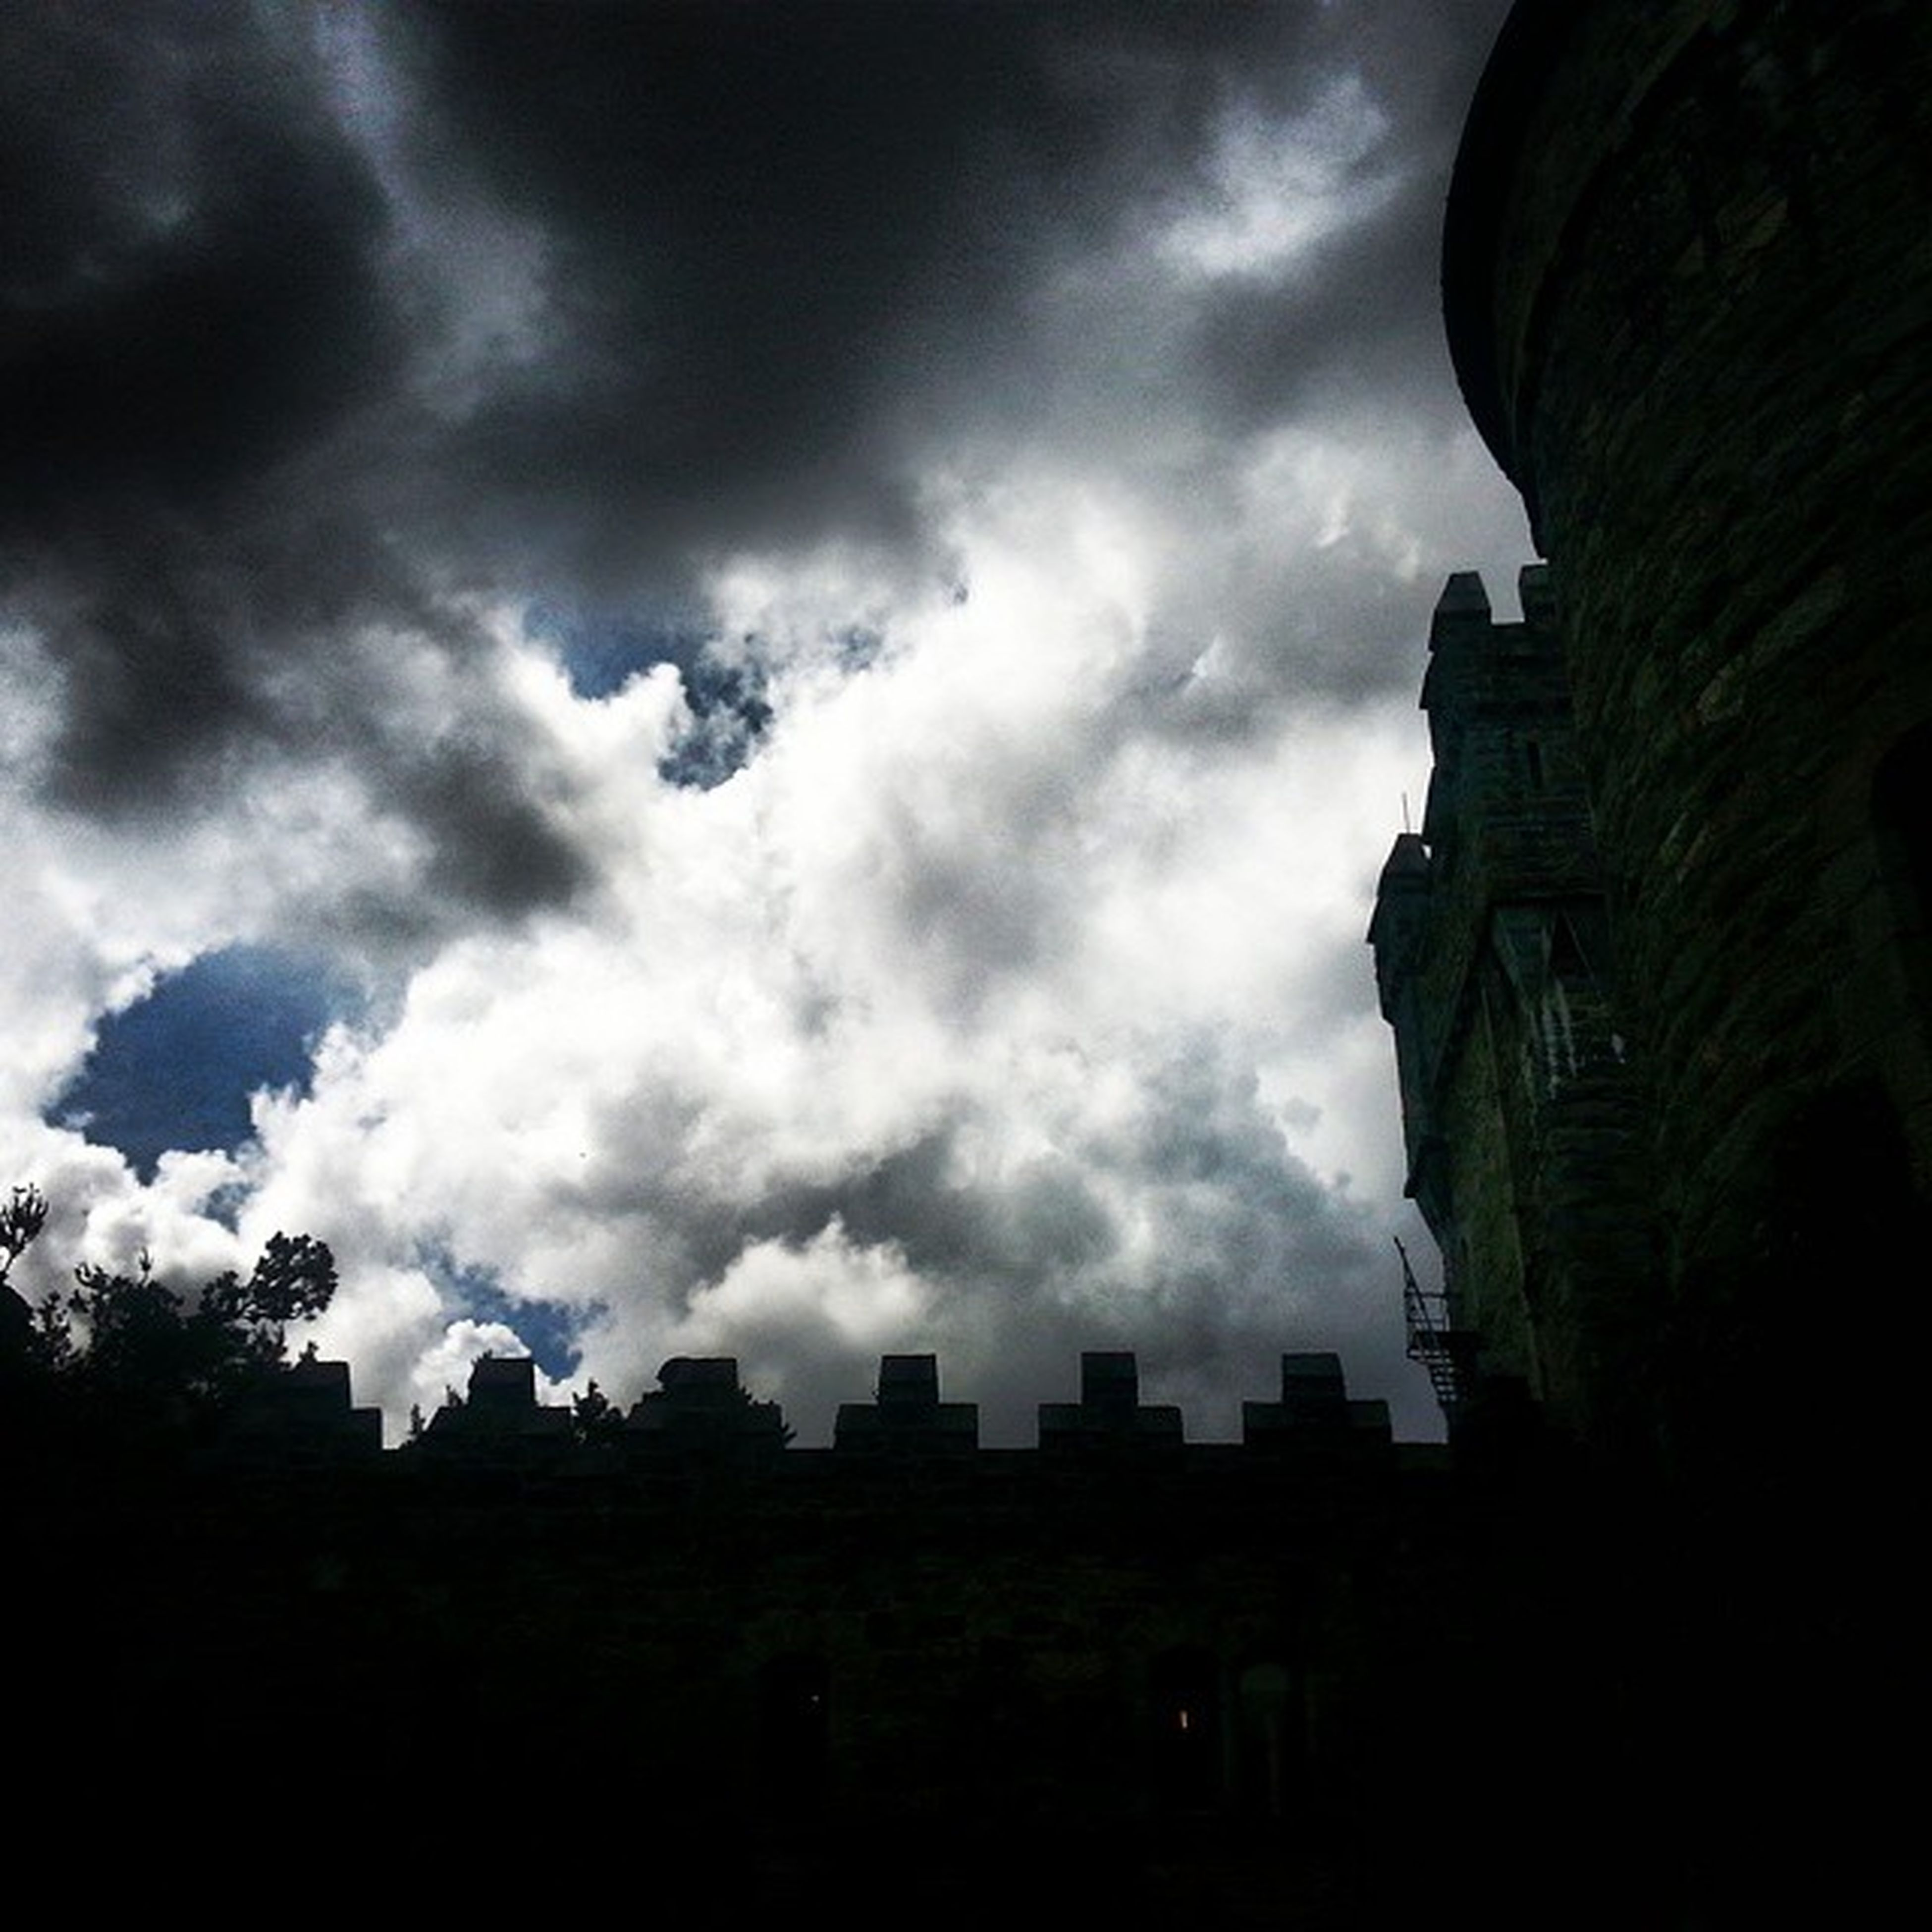 sky, building exterior, architecture, built structure, cloud - sky, cloudy, low angle view, silhouette, cloud, overcast, weather, building, dusk, city, outdoors, storm cloud, tree, no people, residential building, day